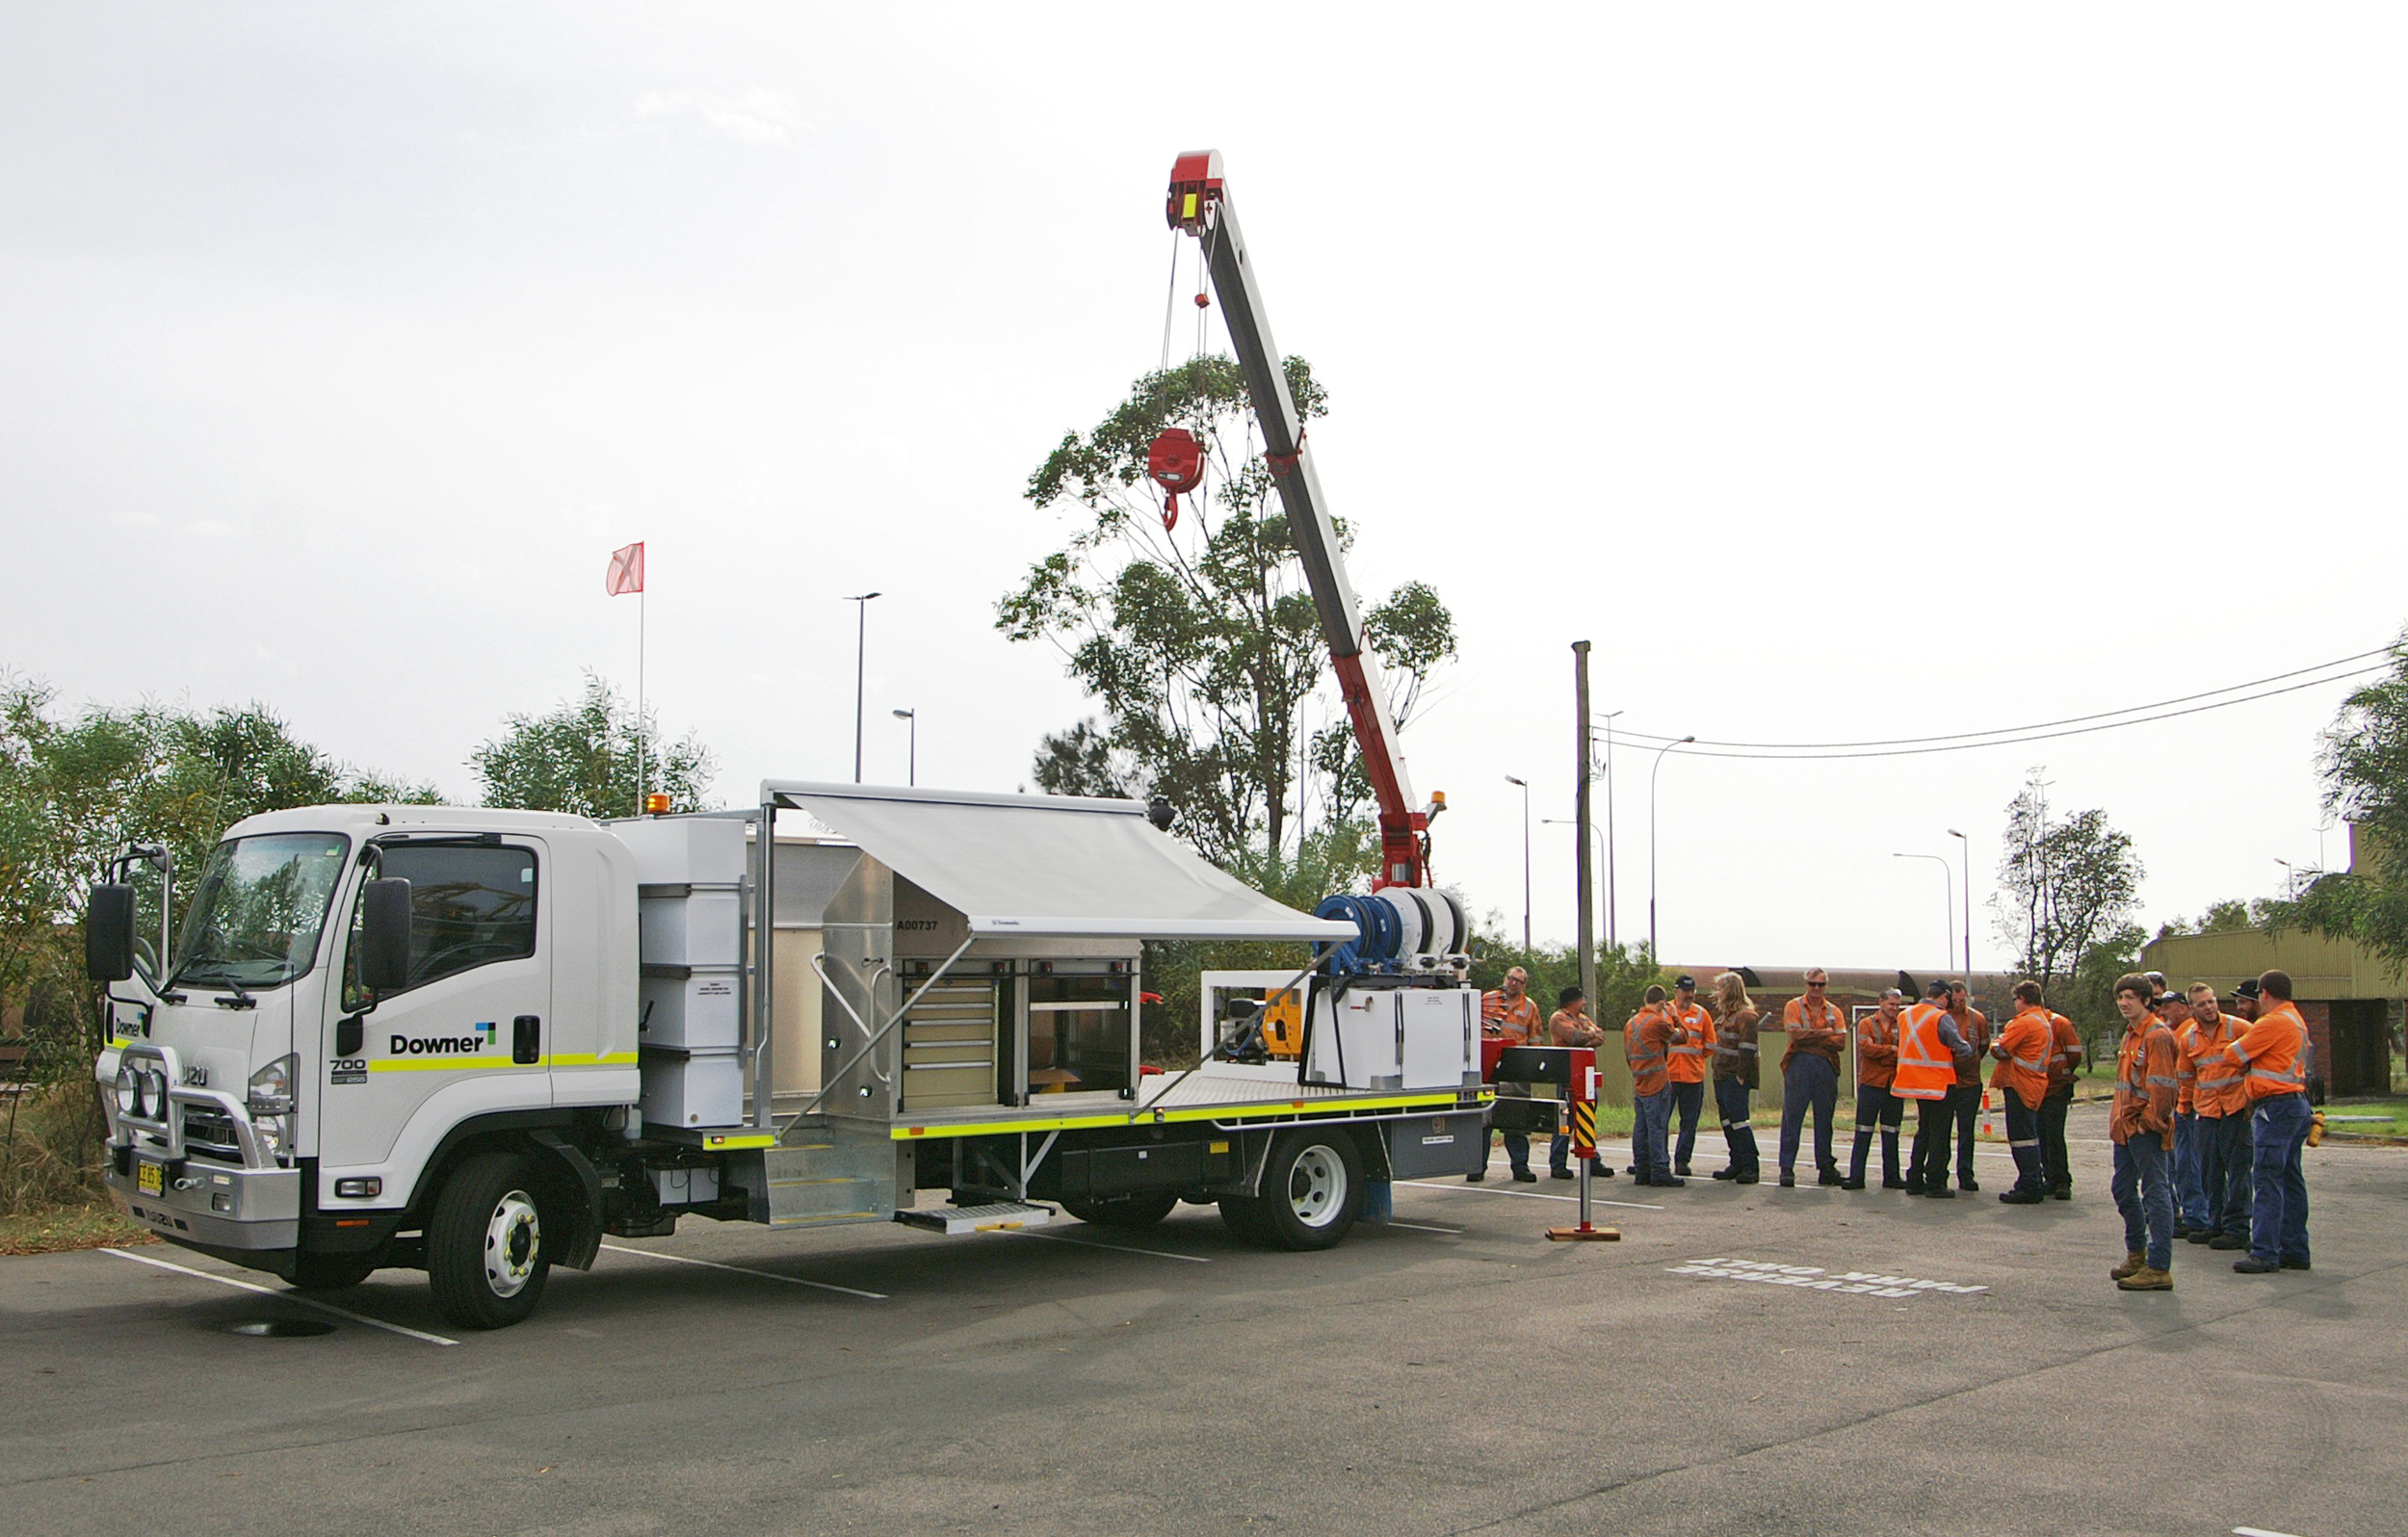 Downer Group's new rail service vehicle, constructed by Varley Specialised Vehicles.